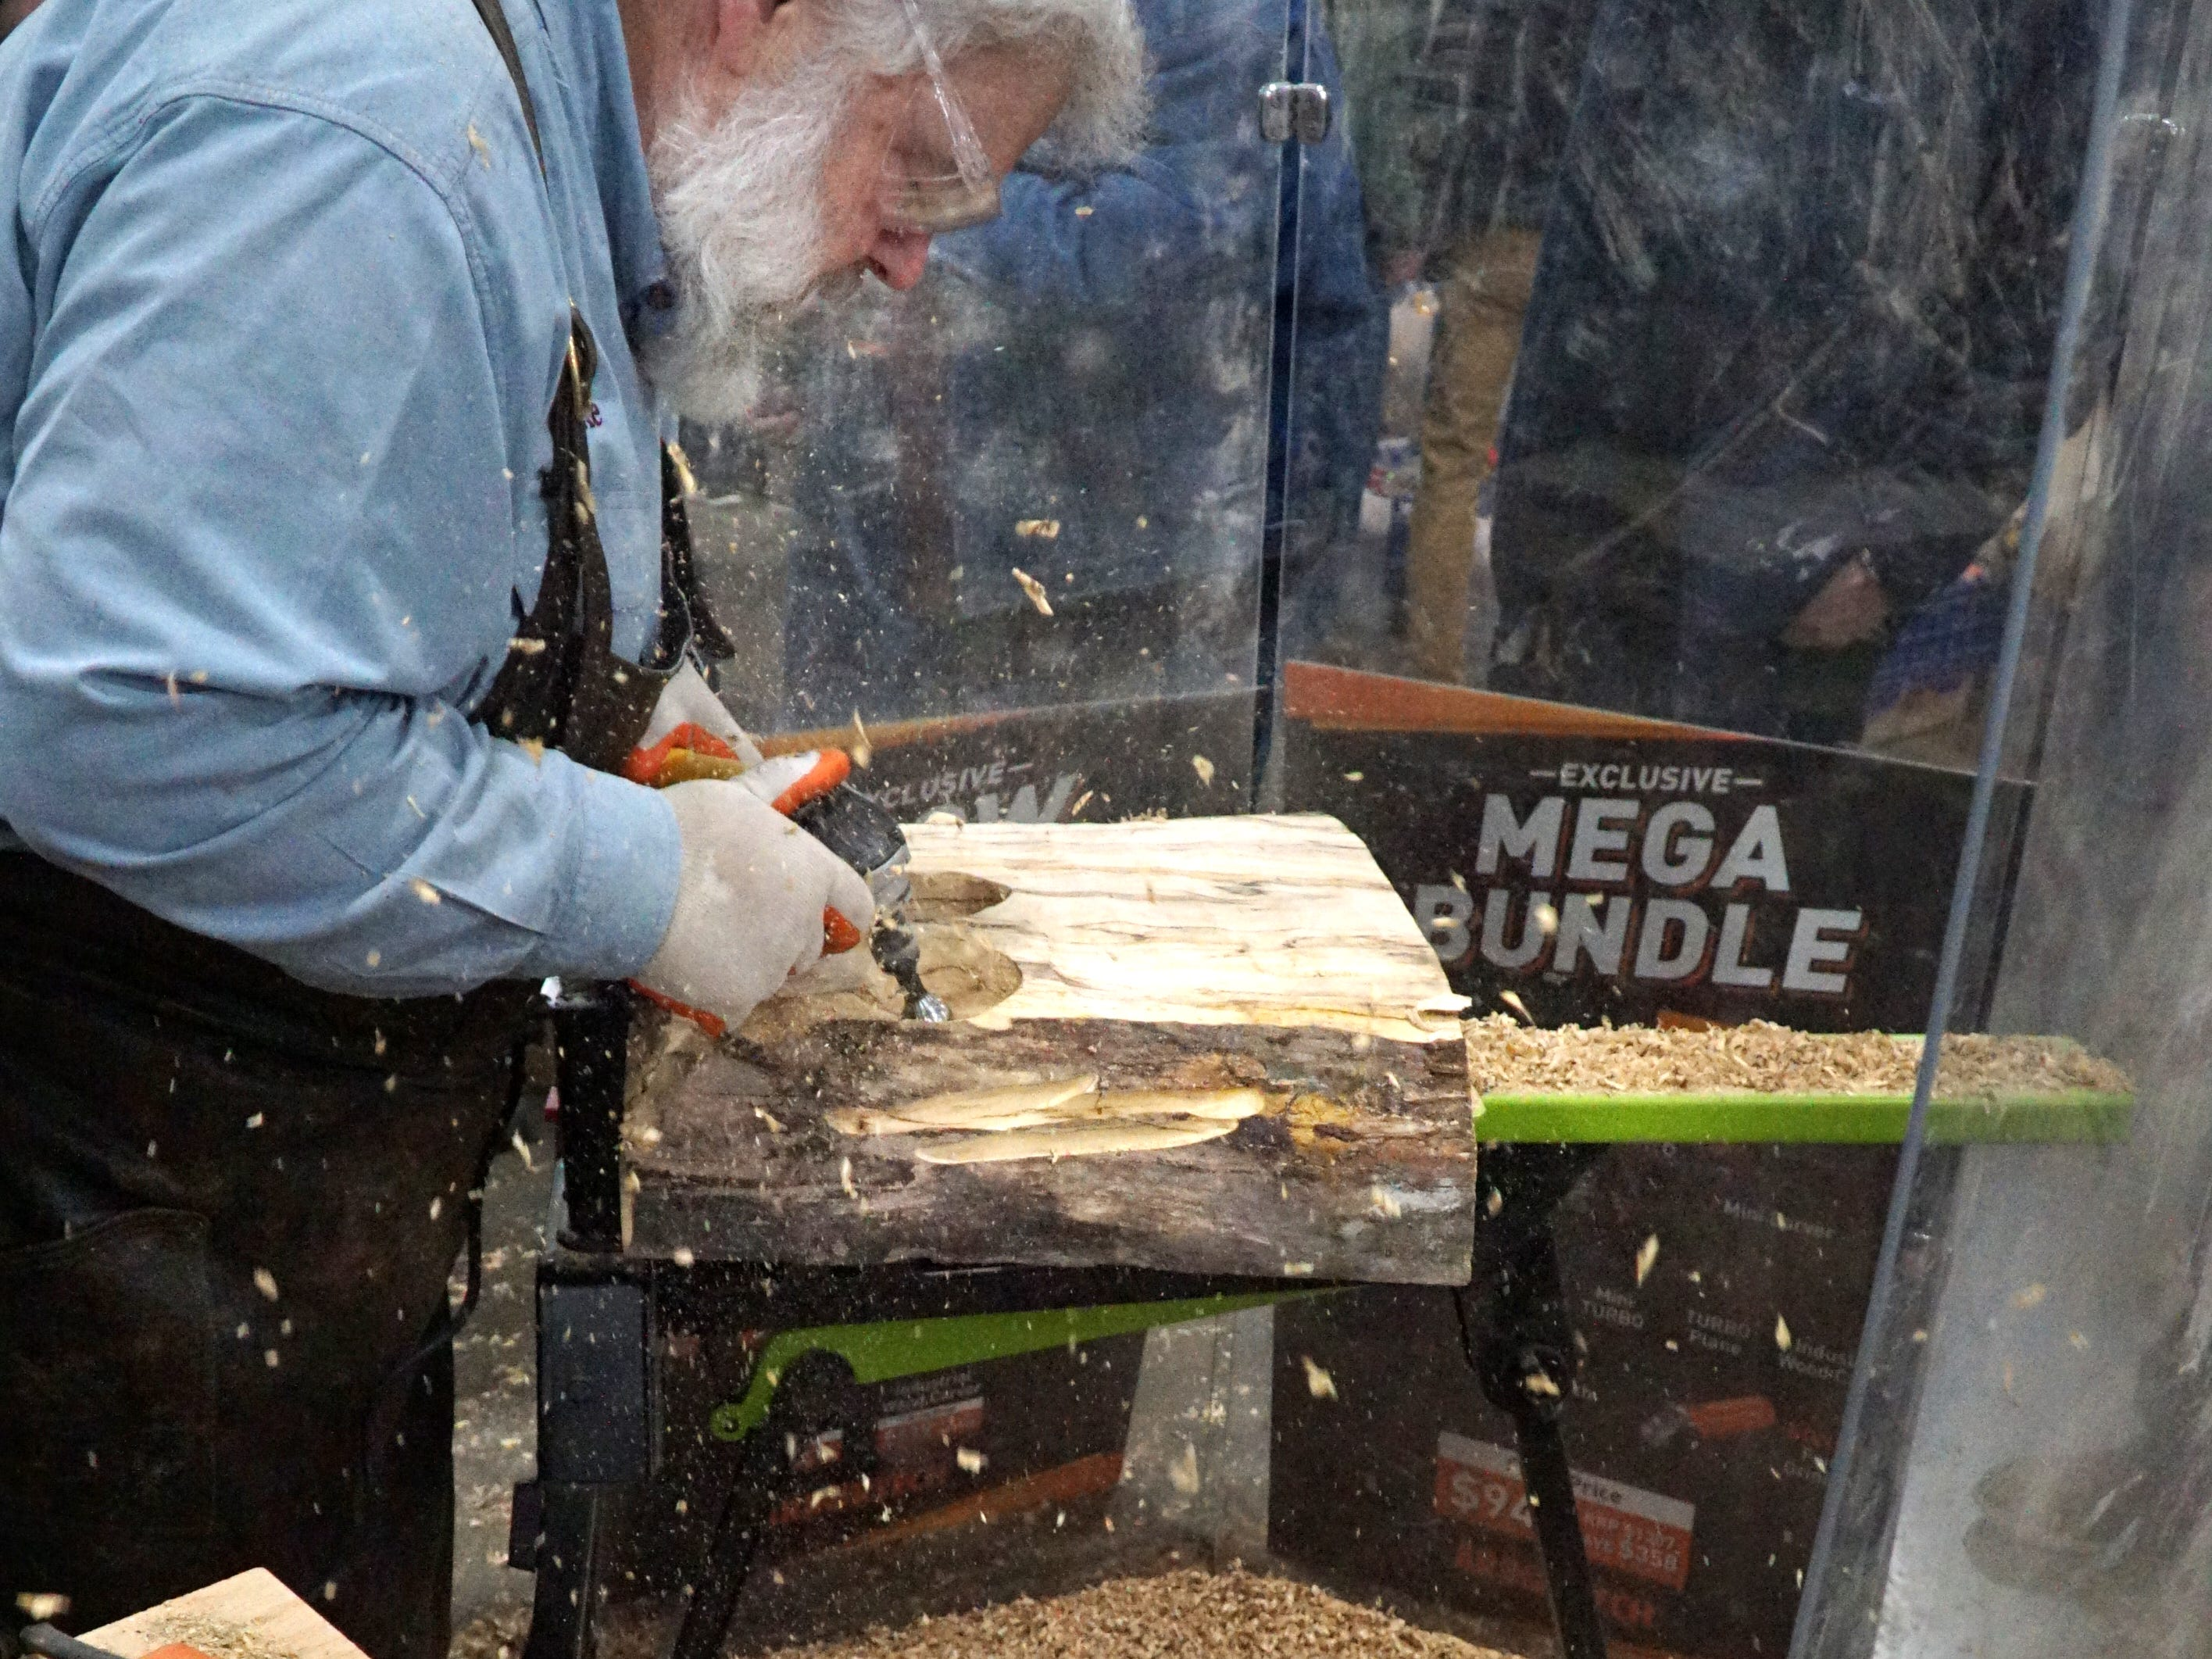 A big pile of woodchips gathers at the feet of Mike VanBelt as he uses a disc cutting tool to work on a slab of wood.